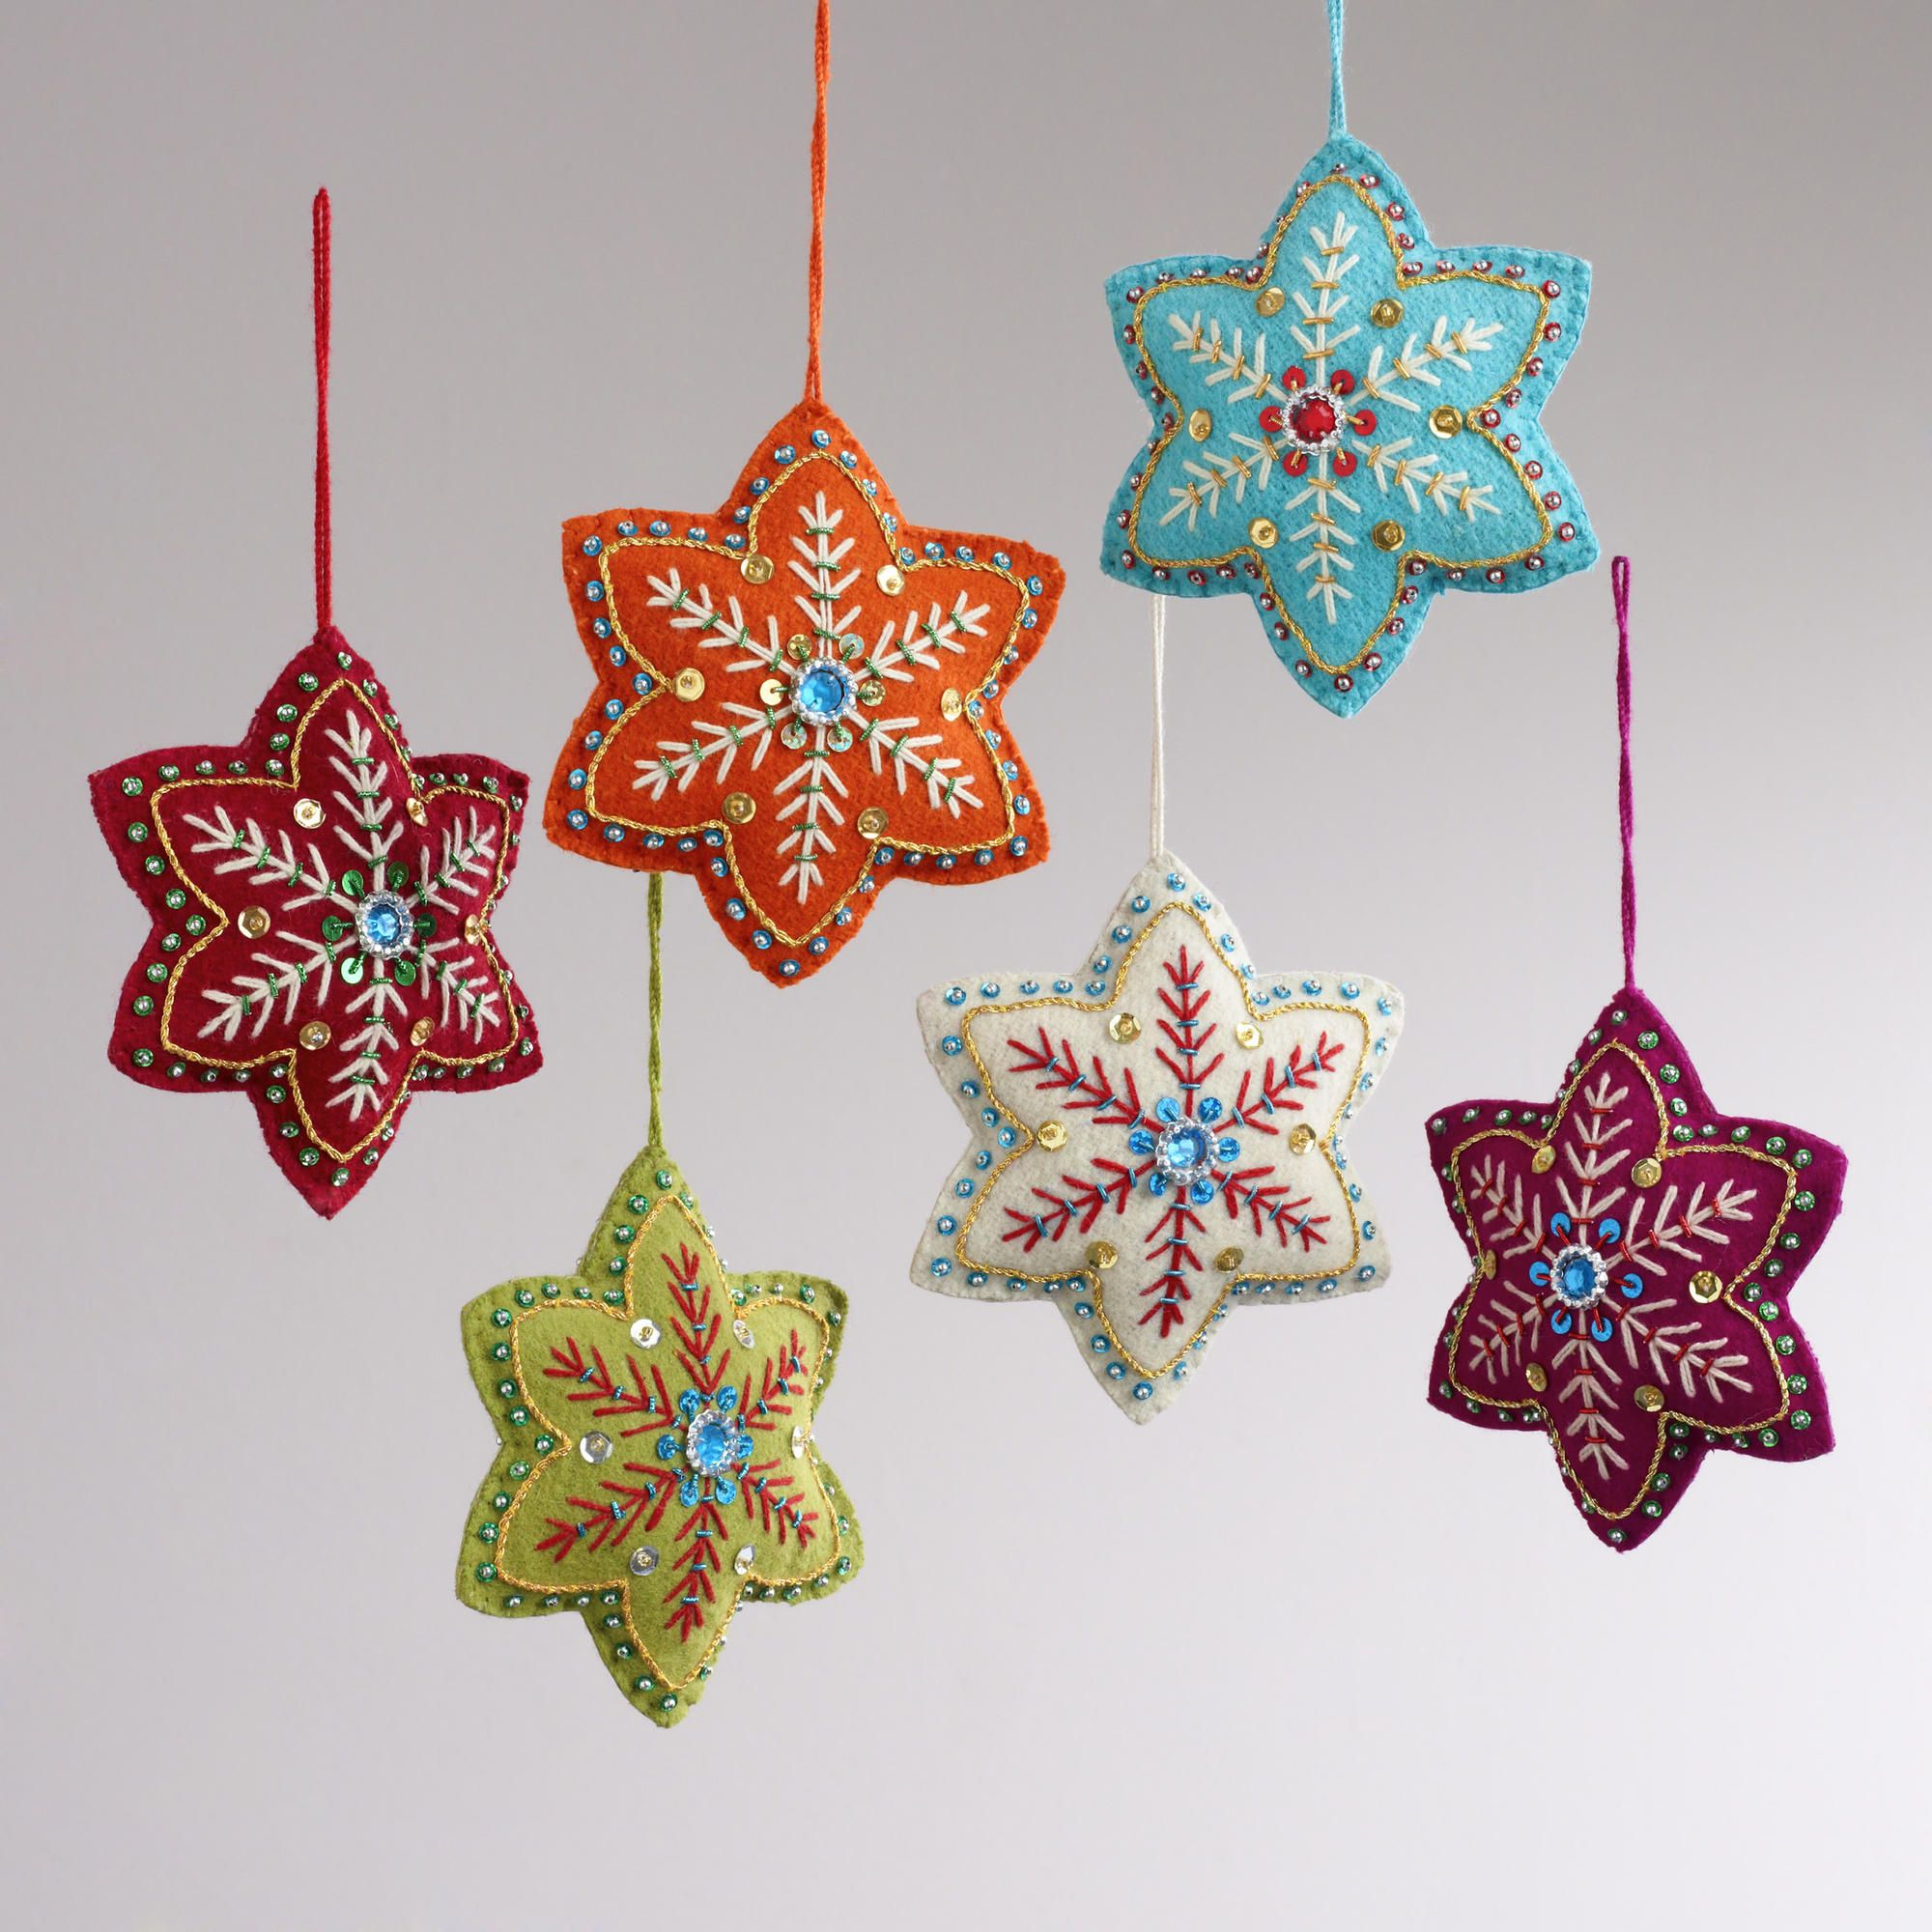 felt ornaments | Embroidered Felt 6-Pointed Star Ornaments, Set of 6 ...